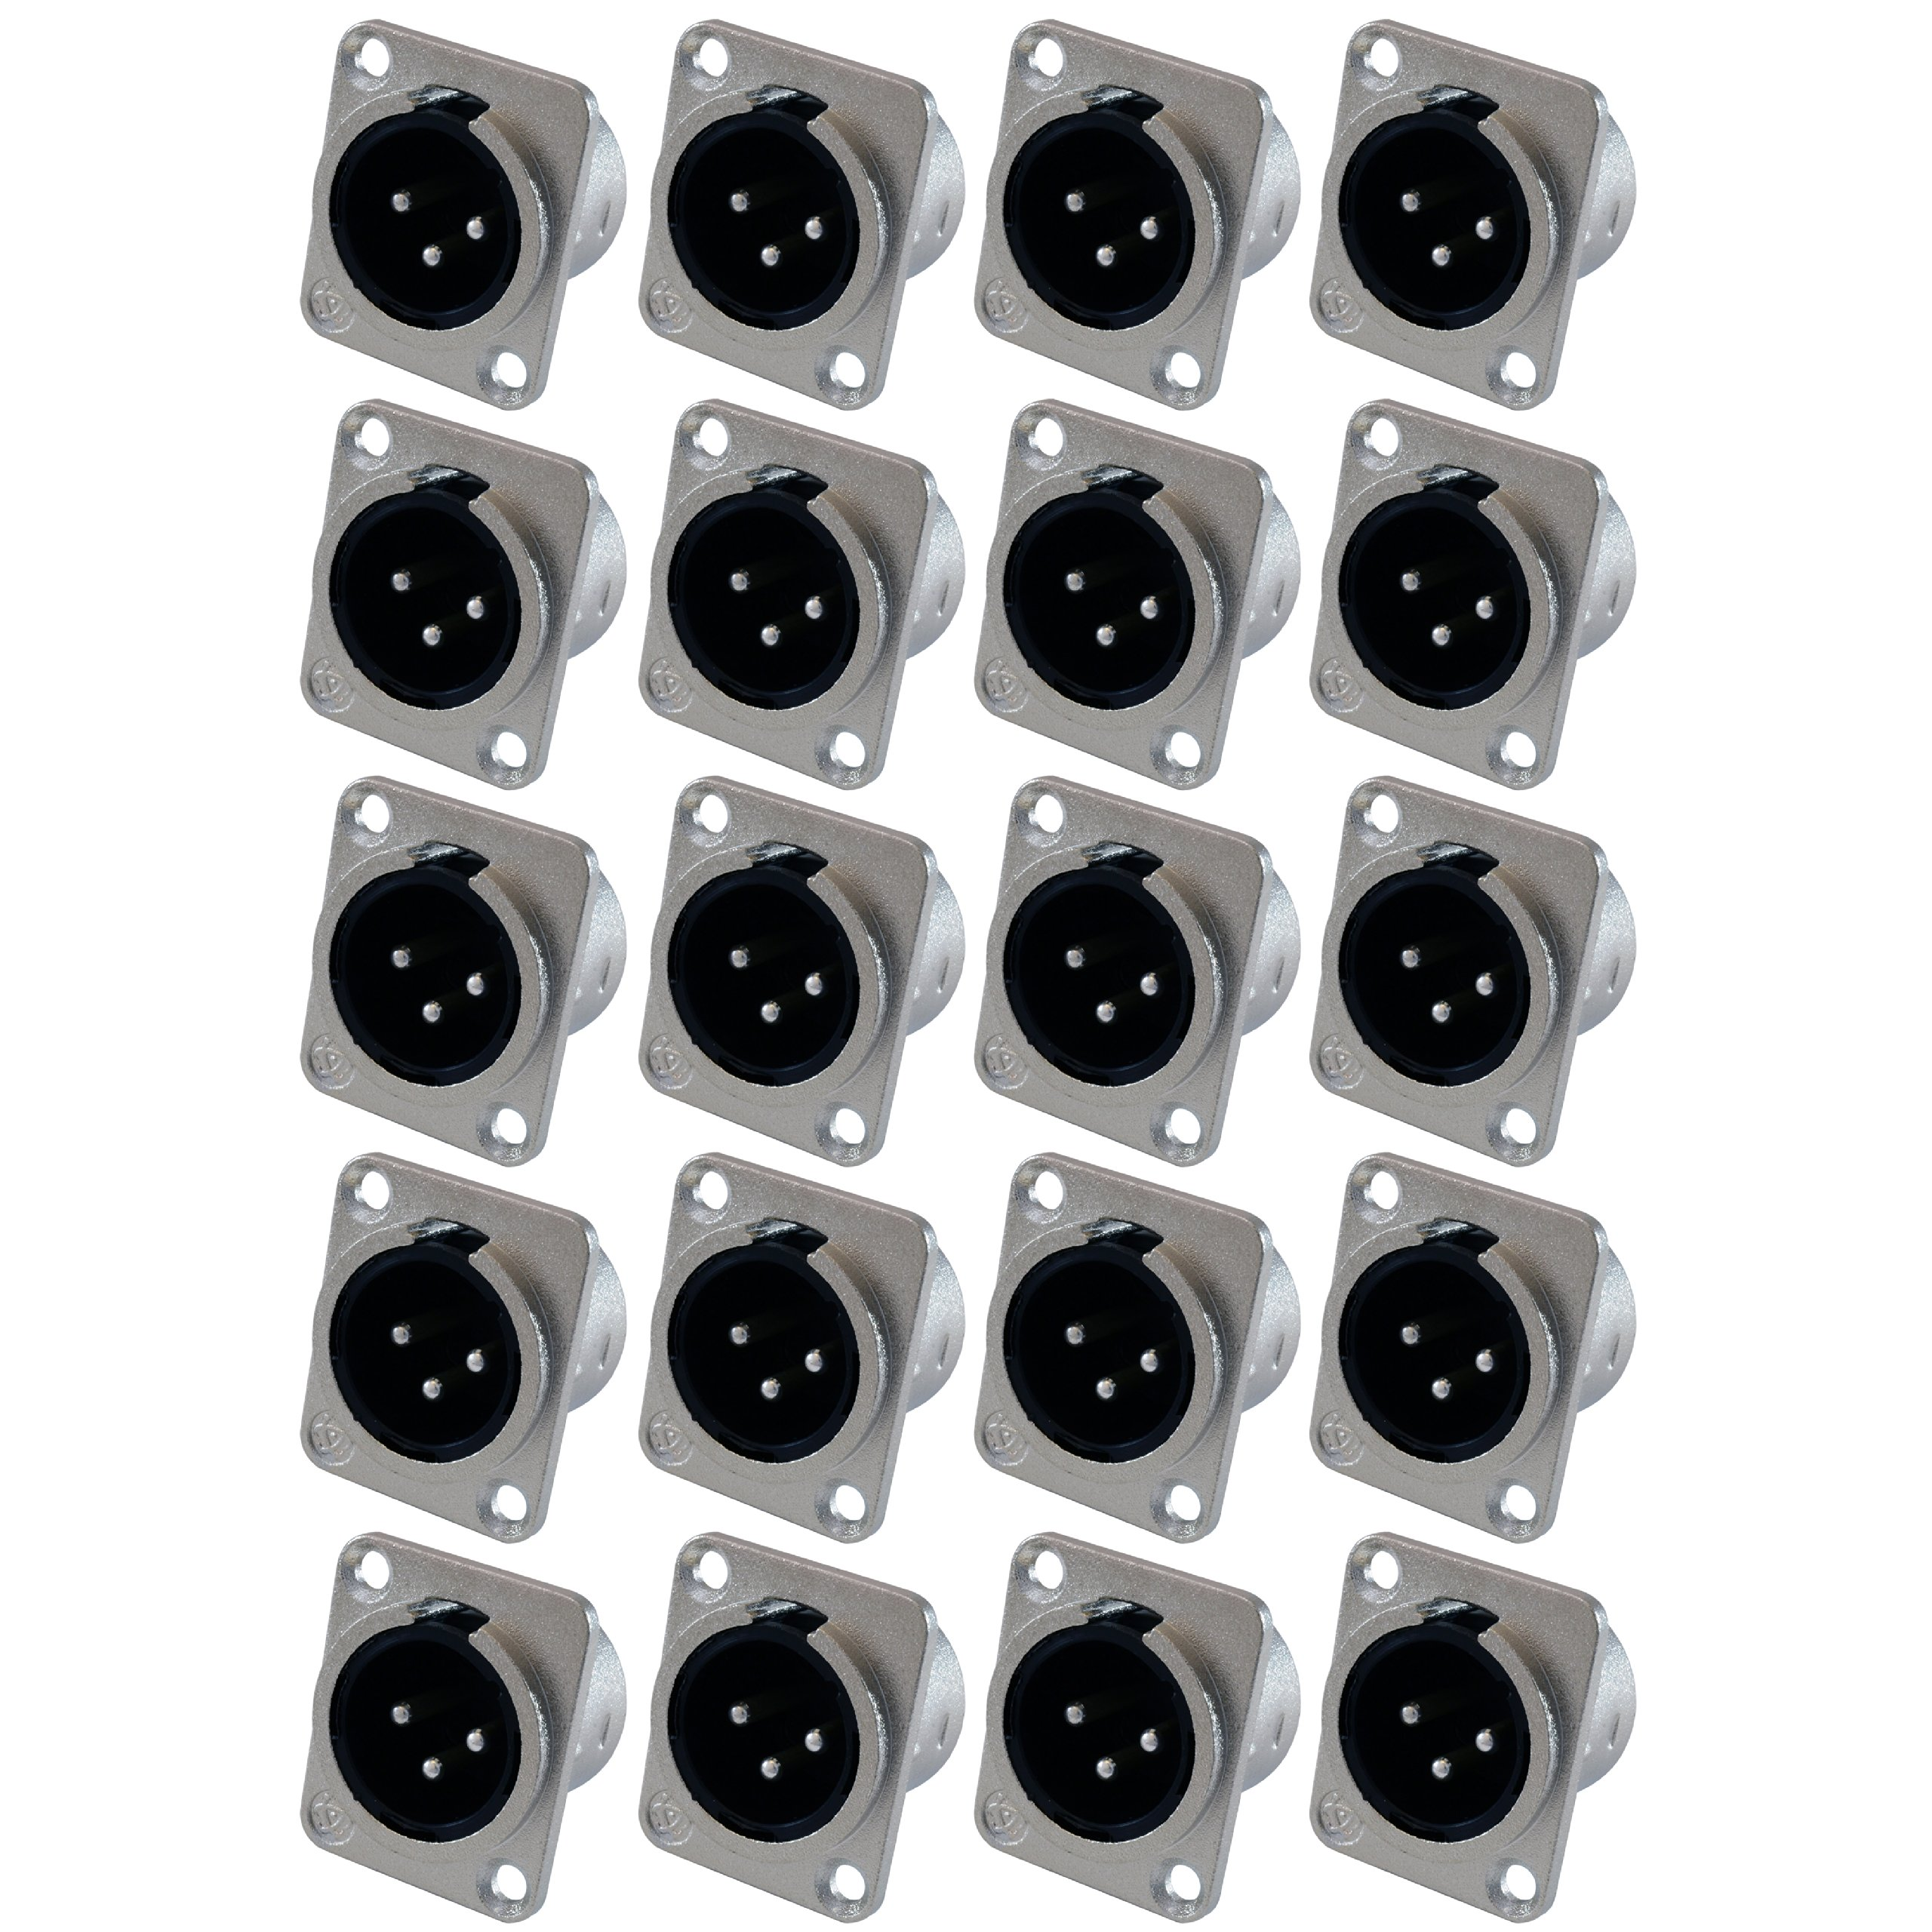 GLS Audio XLR Male Jack 3 Pin - Panel Mount Jacks D Series Size XLR-M - 20 Pack by GLS Audio